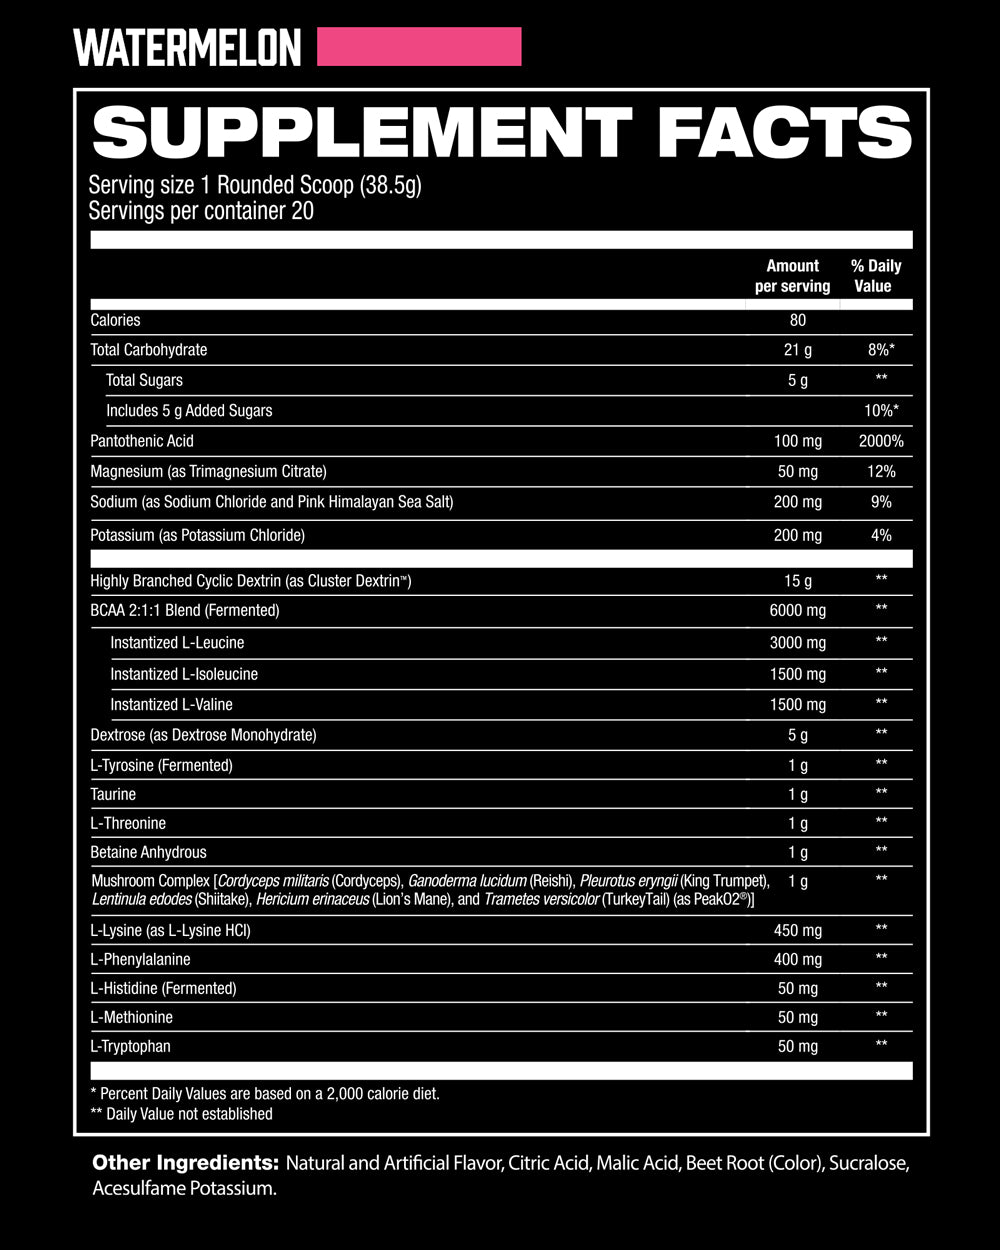 IntraR3 Watermelon Supplement Facts